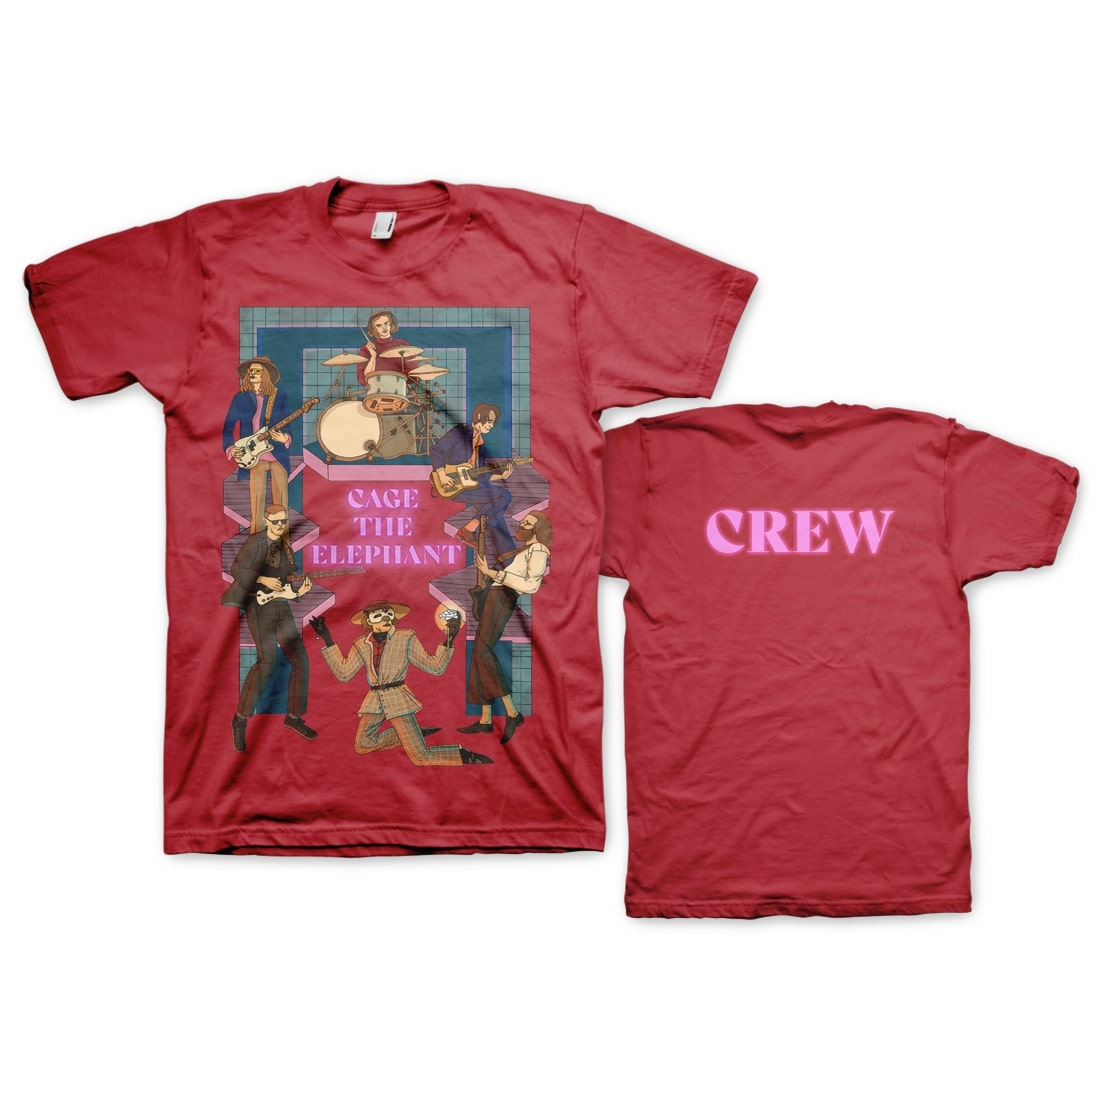 Red Crew Relief T-Shirt